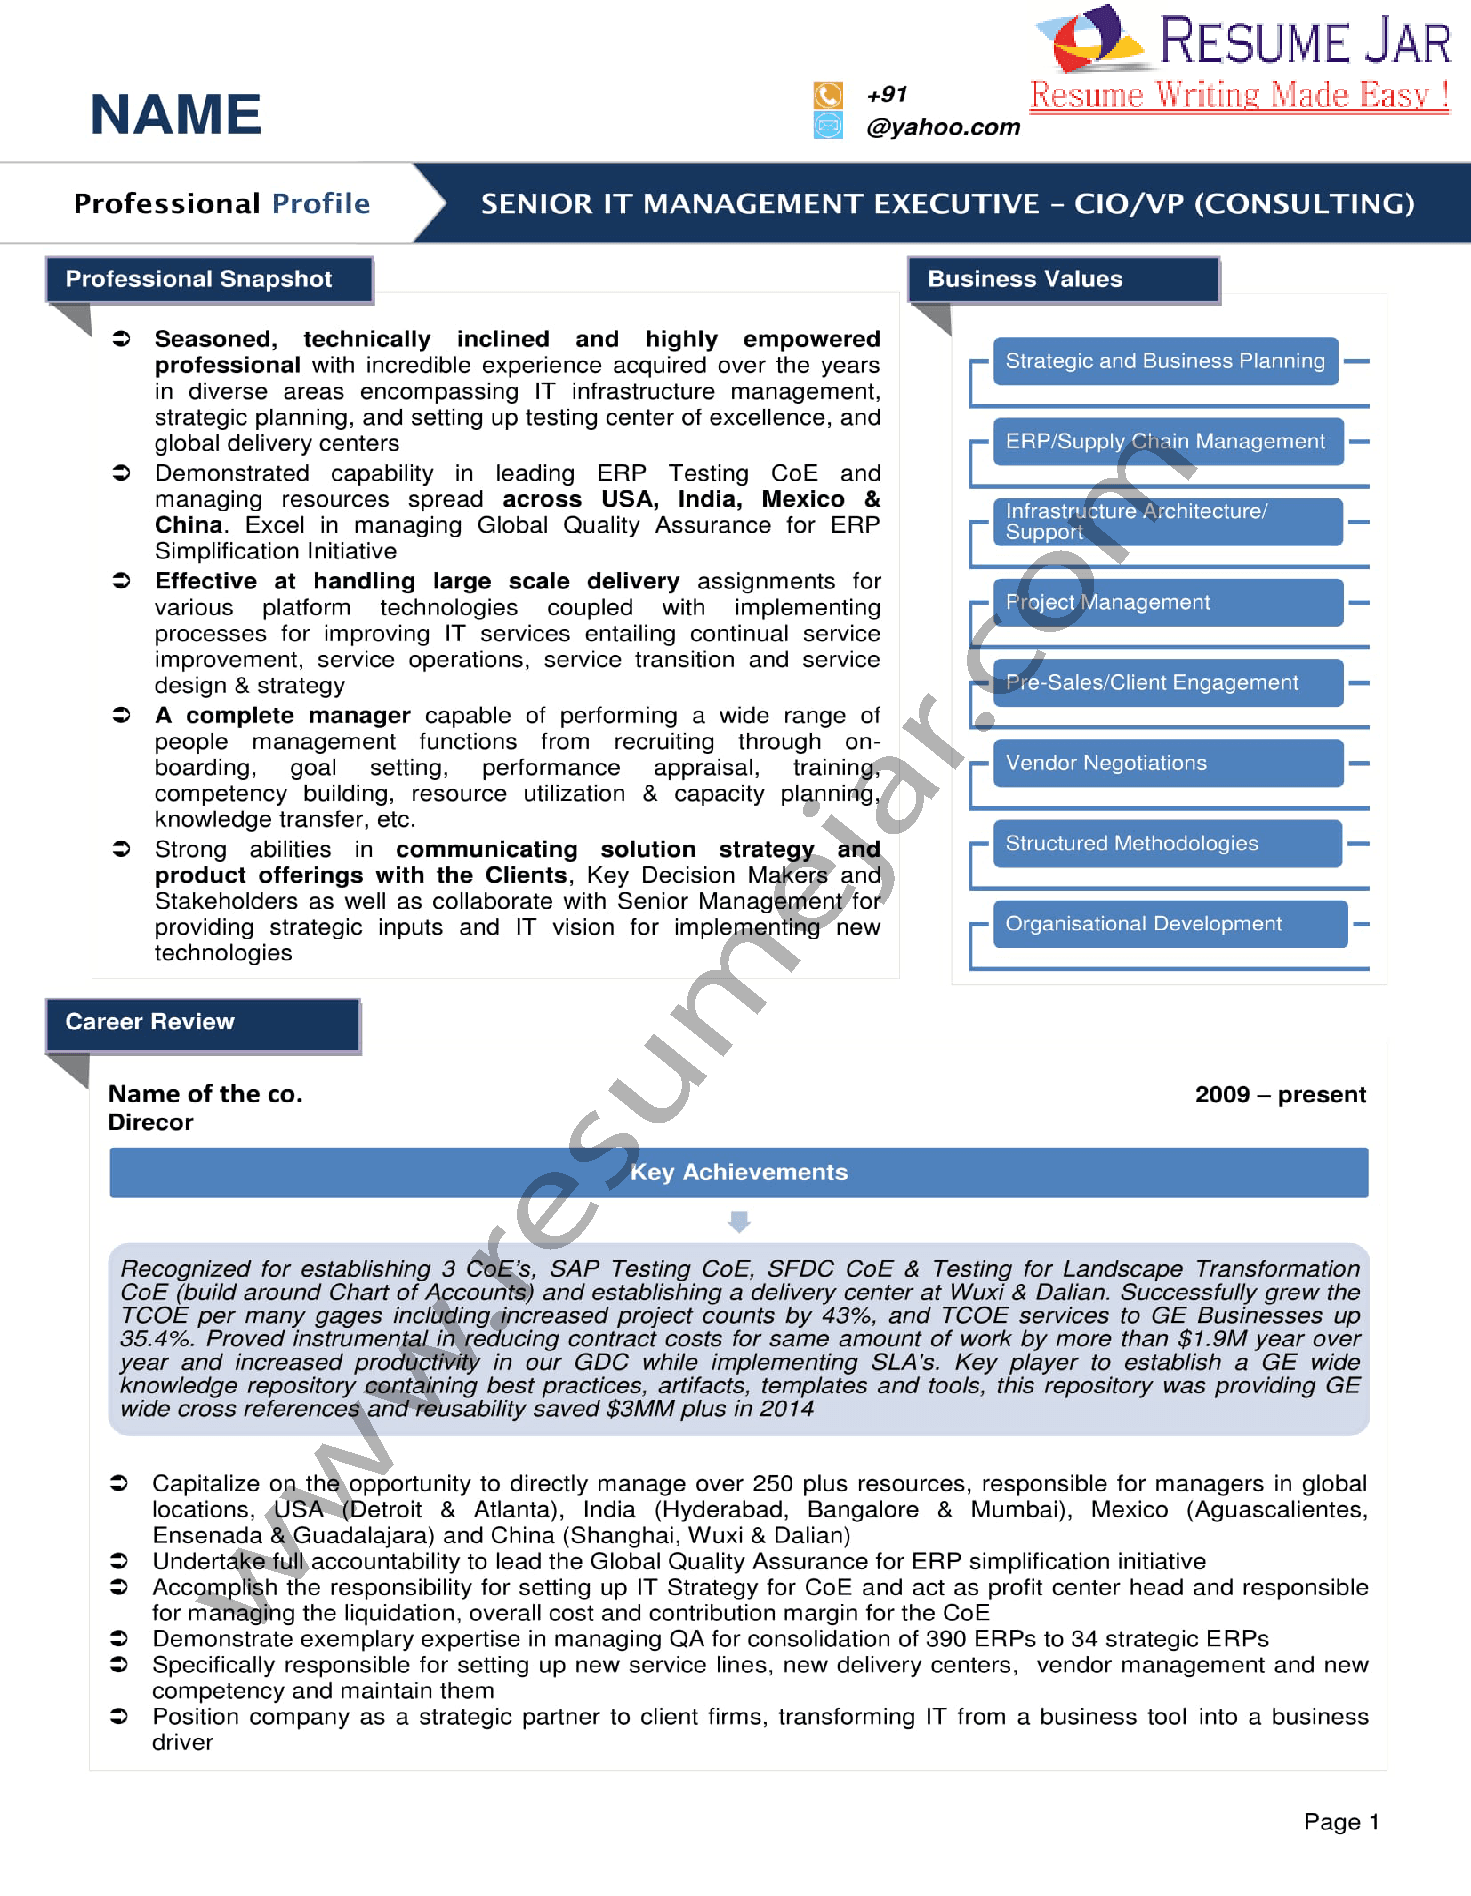 graphical resume samples